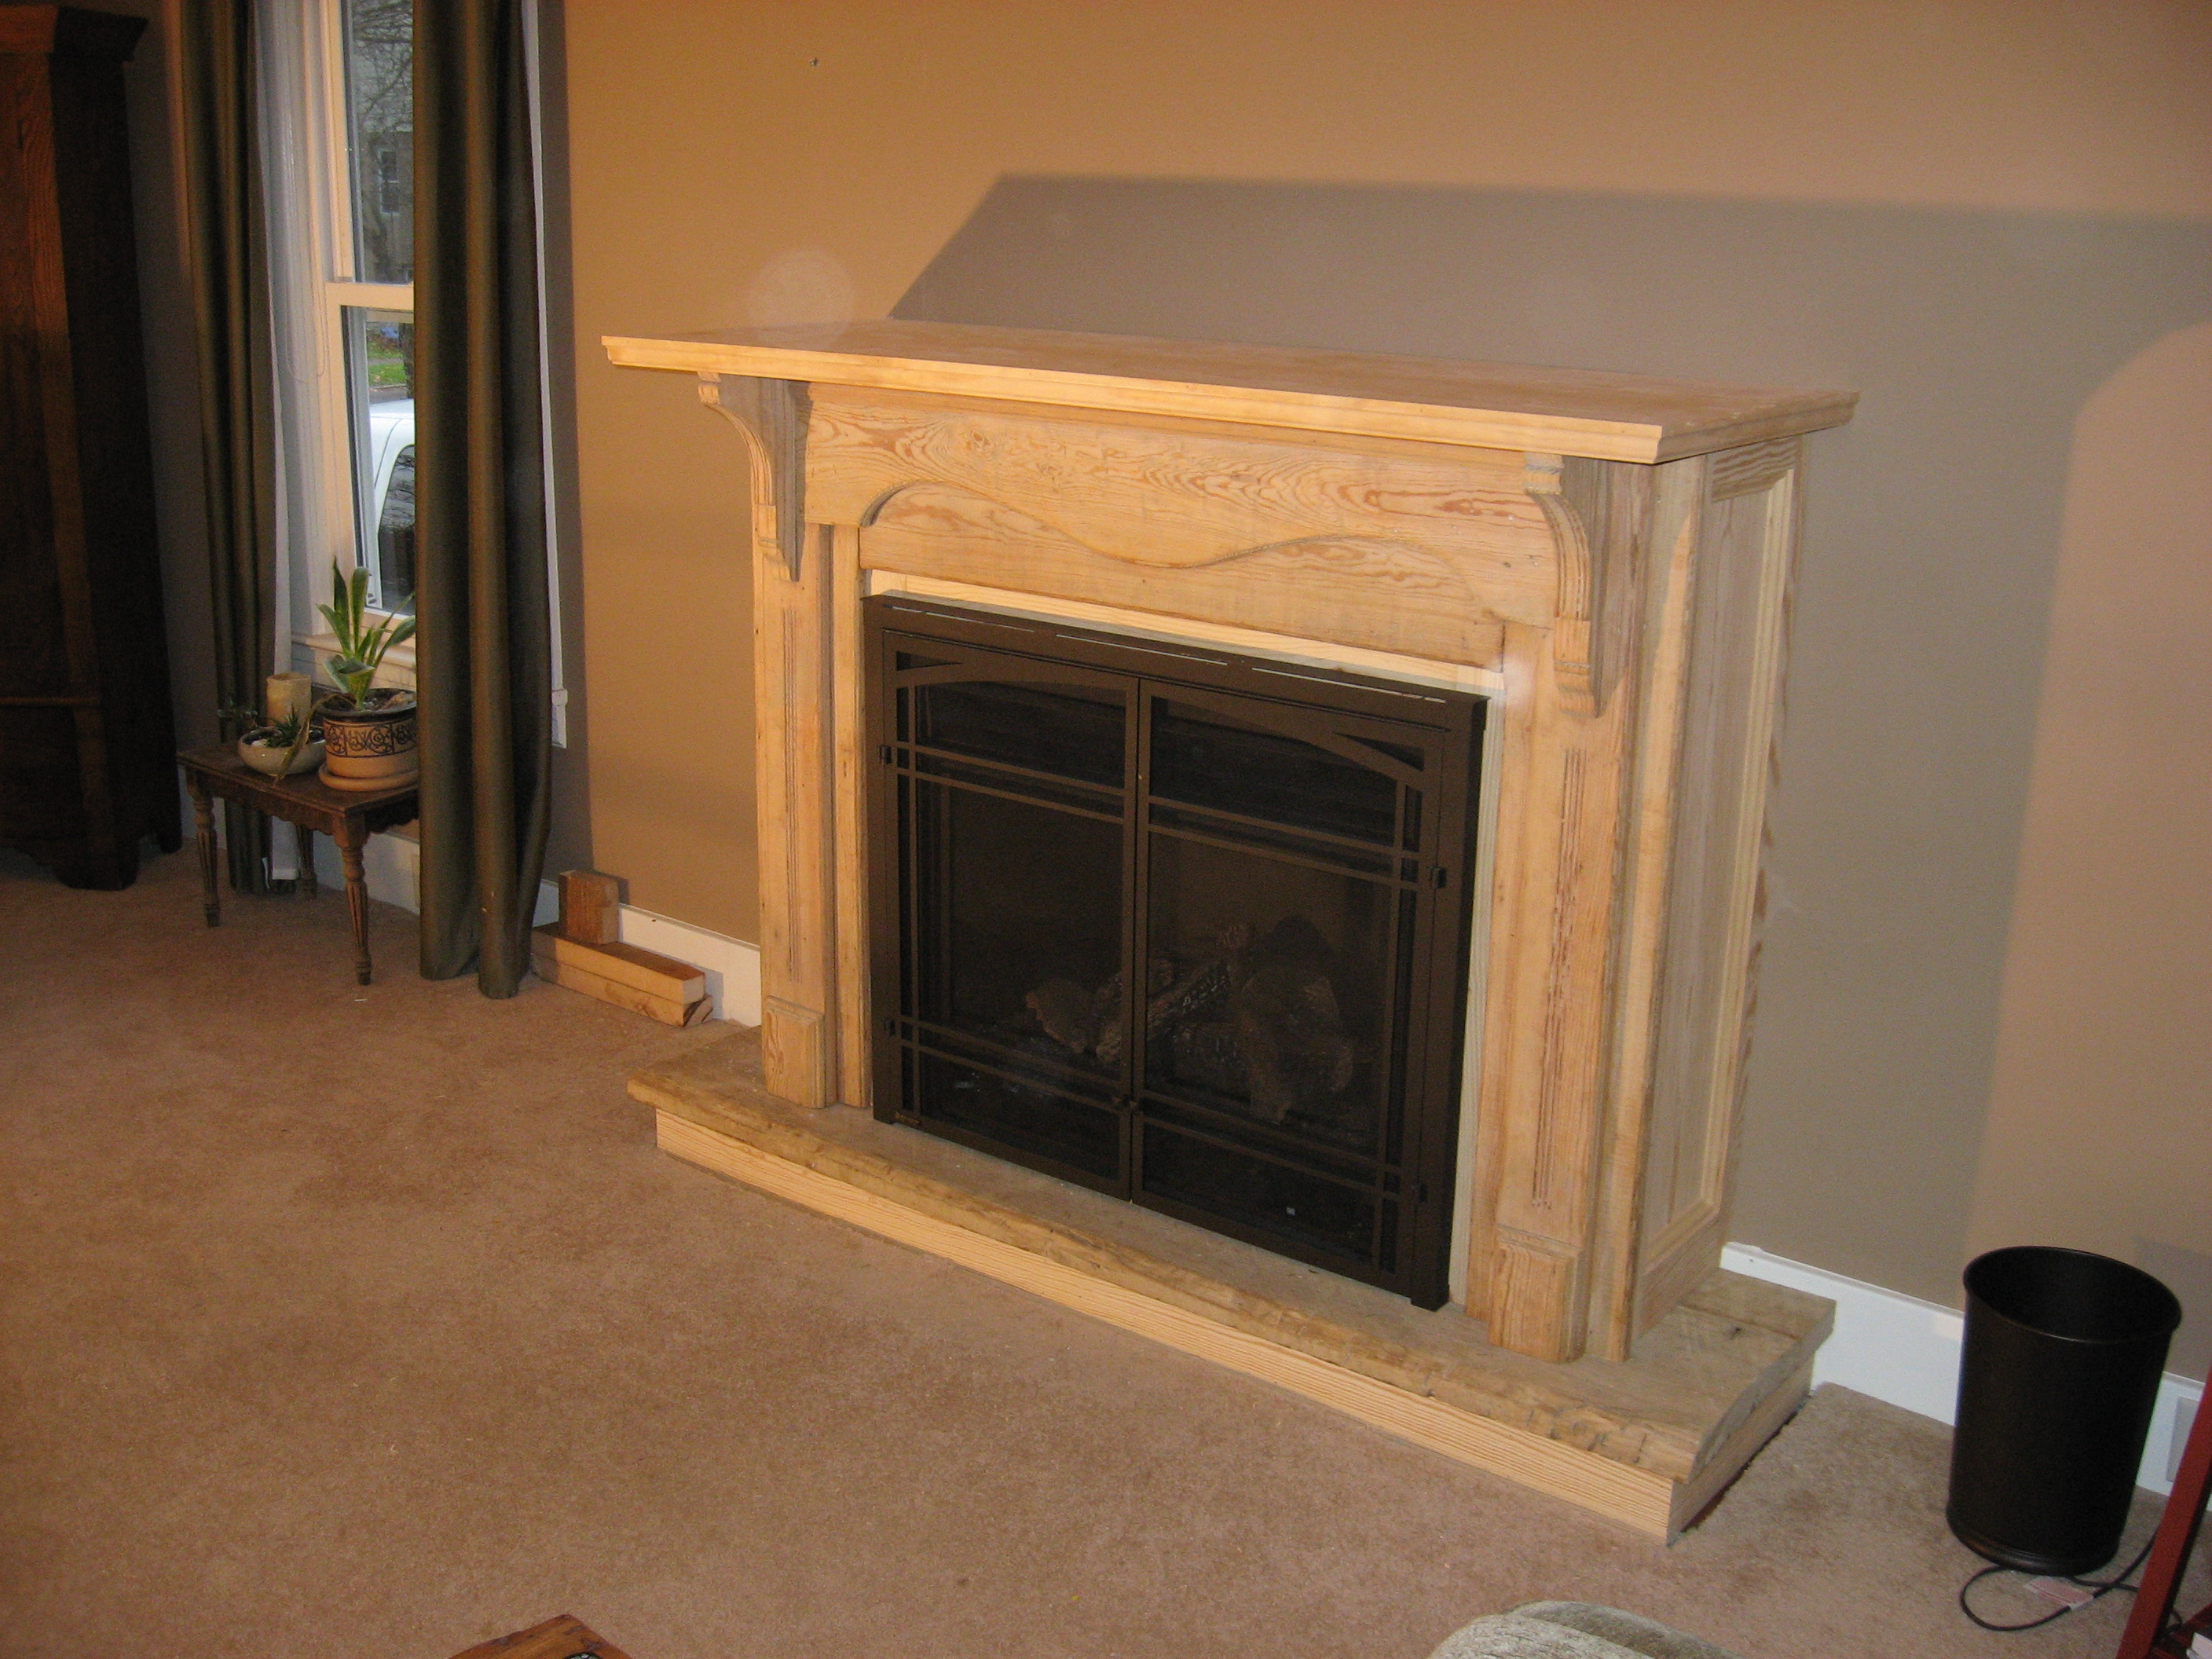 Fireplace -- After